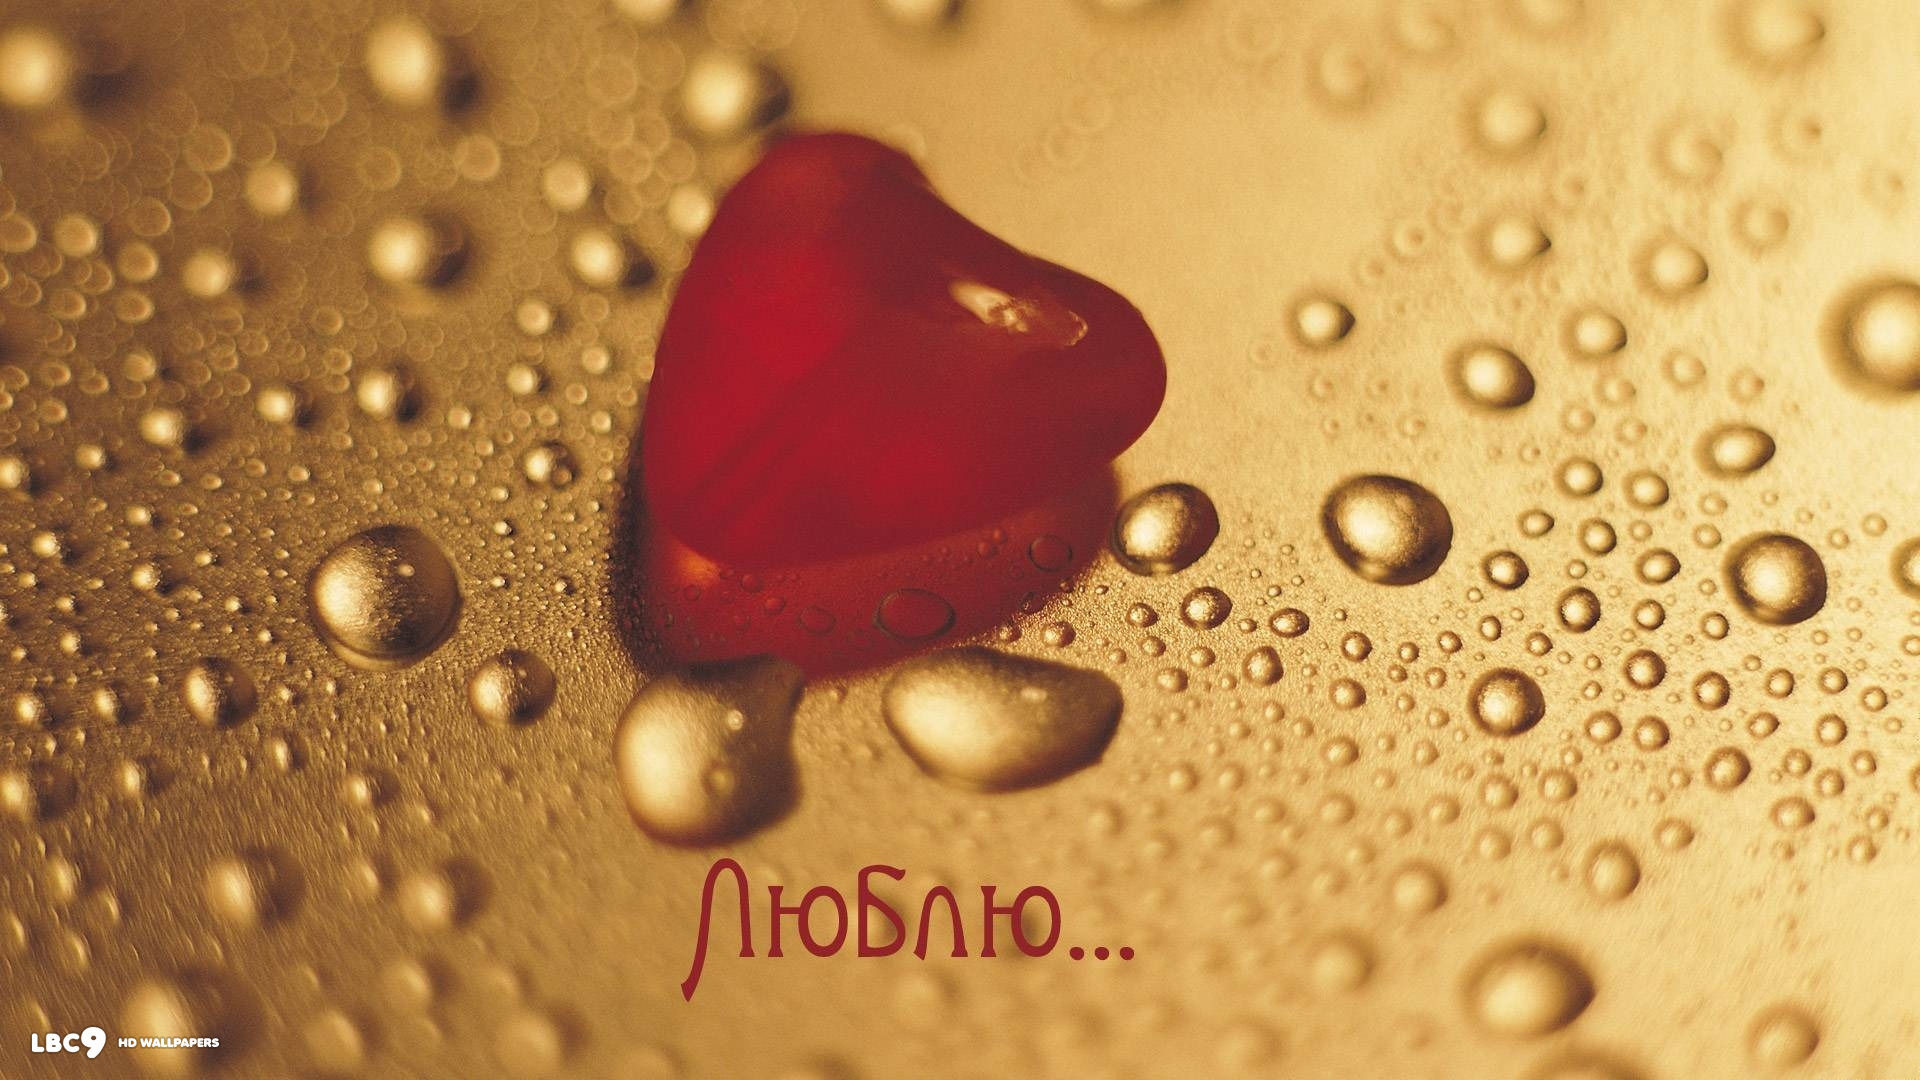 Res: 1920x1080, i love you russian word language red heart water drops hd wallpaper